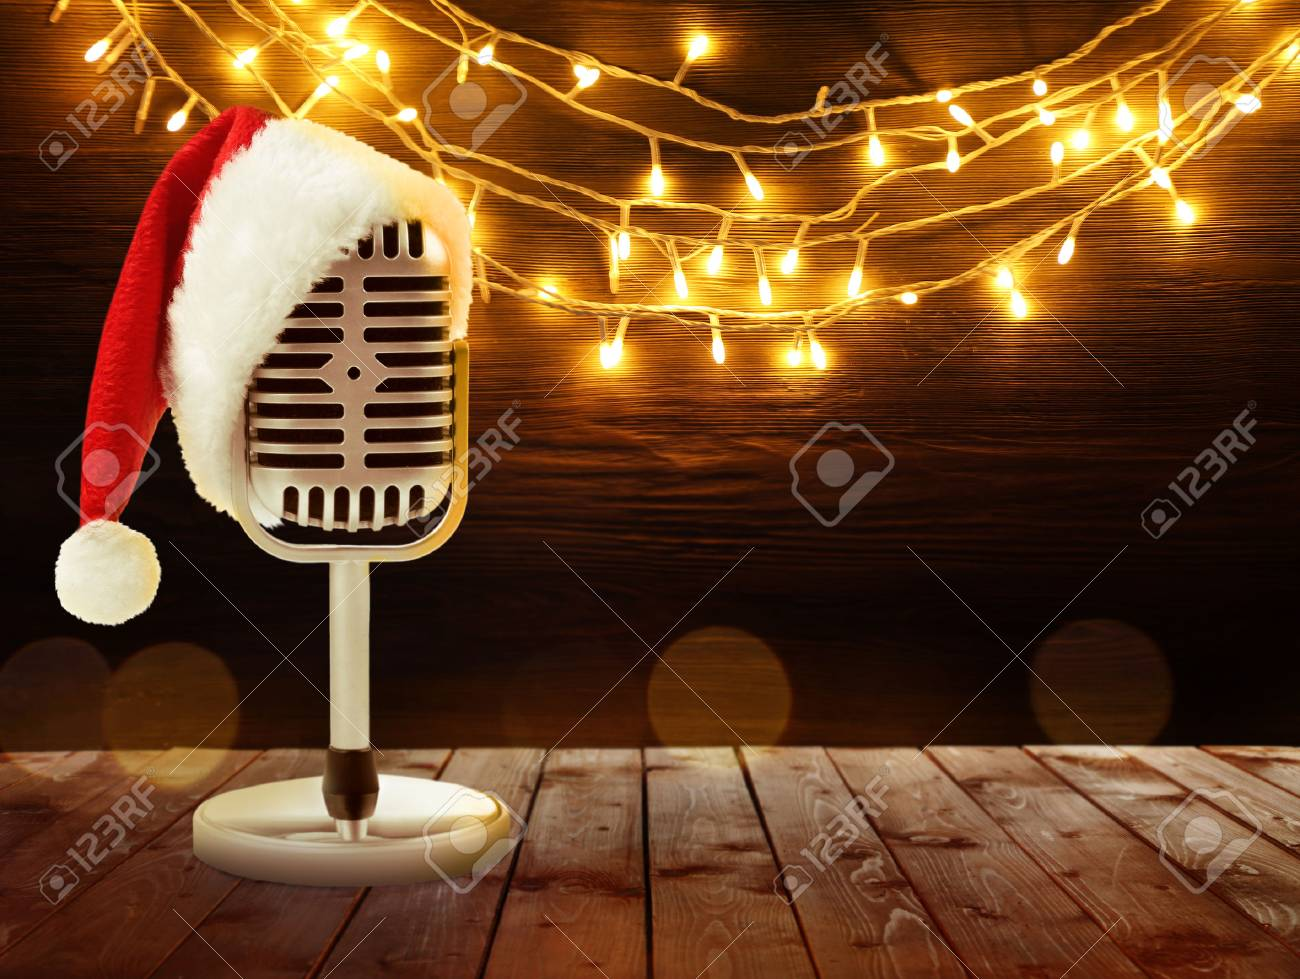 f7c5319ea936d Microphone with Santa hat and garland on background. Christmas music concept  Stock Photo - 90582092